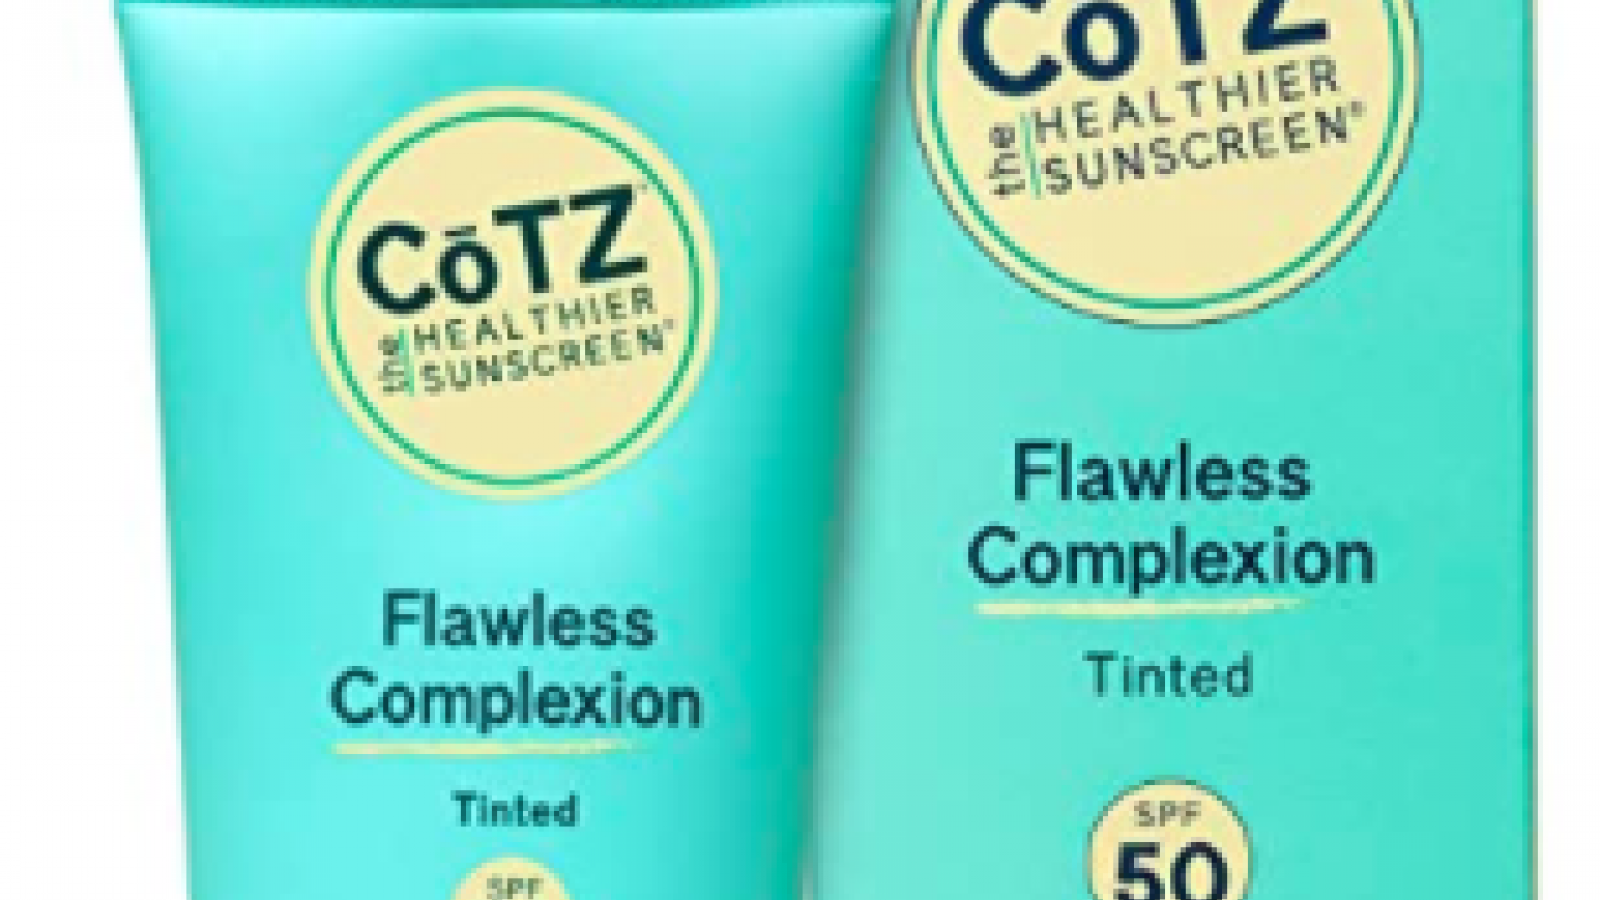 Anyone know where i can buy Cotz Flawless sunscreen in Qatar?